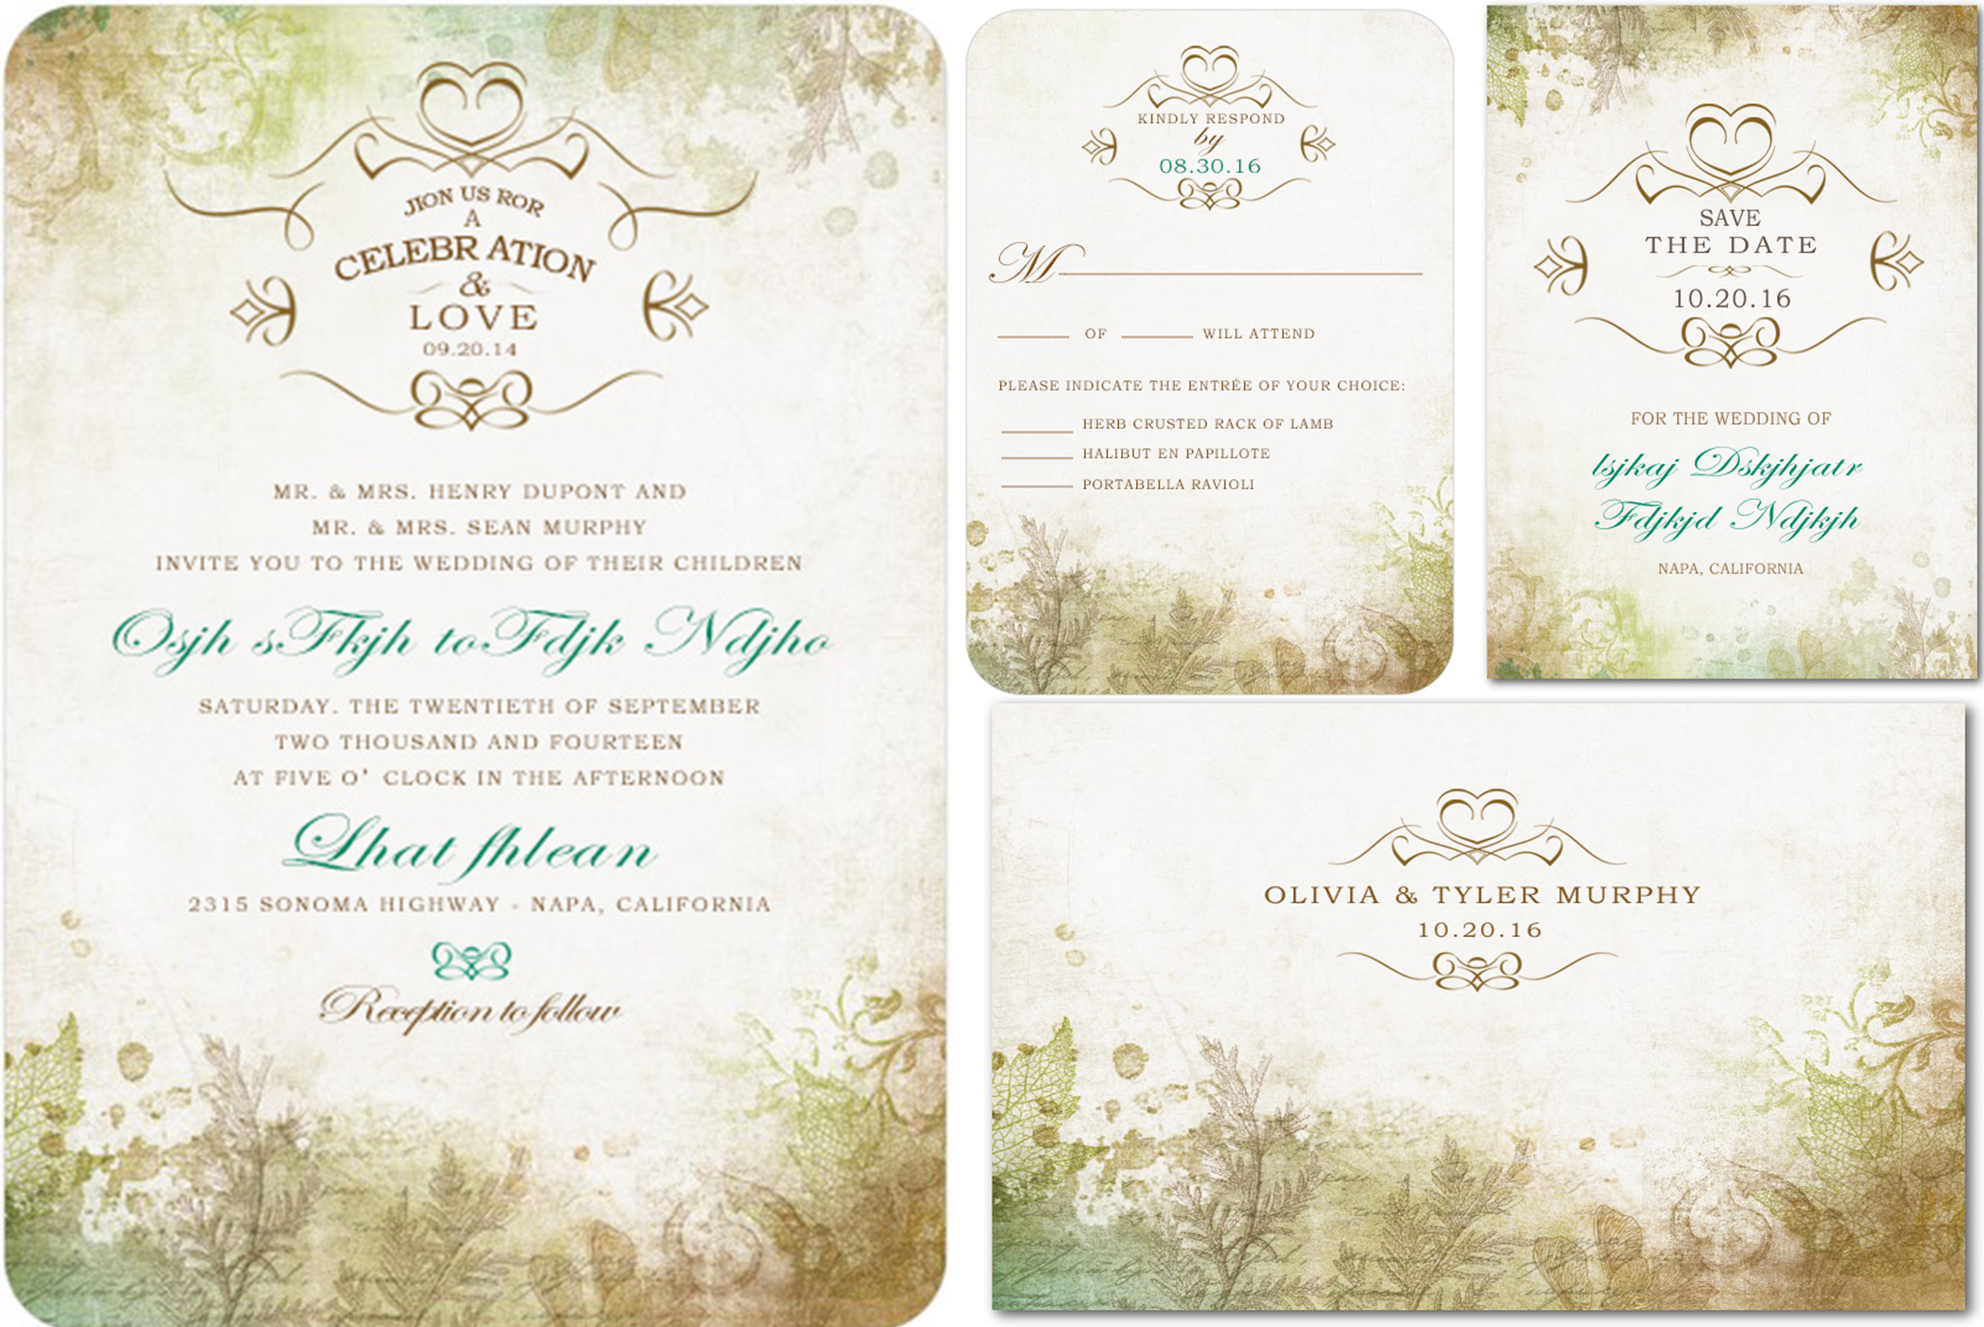 How to Create a Gorgeous Wedding with Cheap Price - Happyinvitation ...